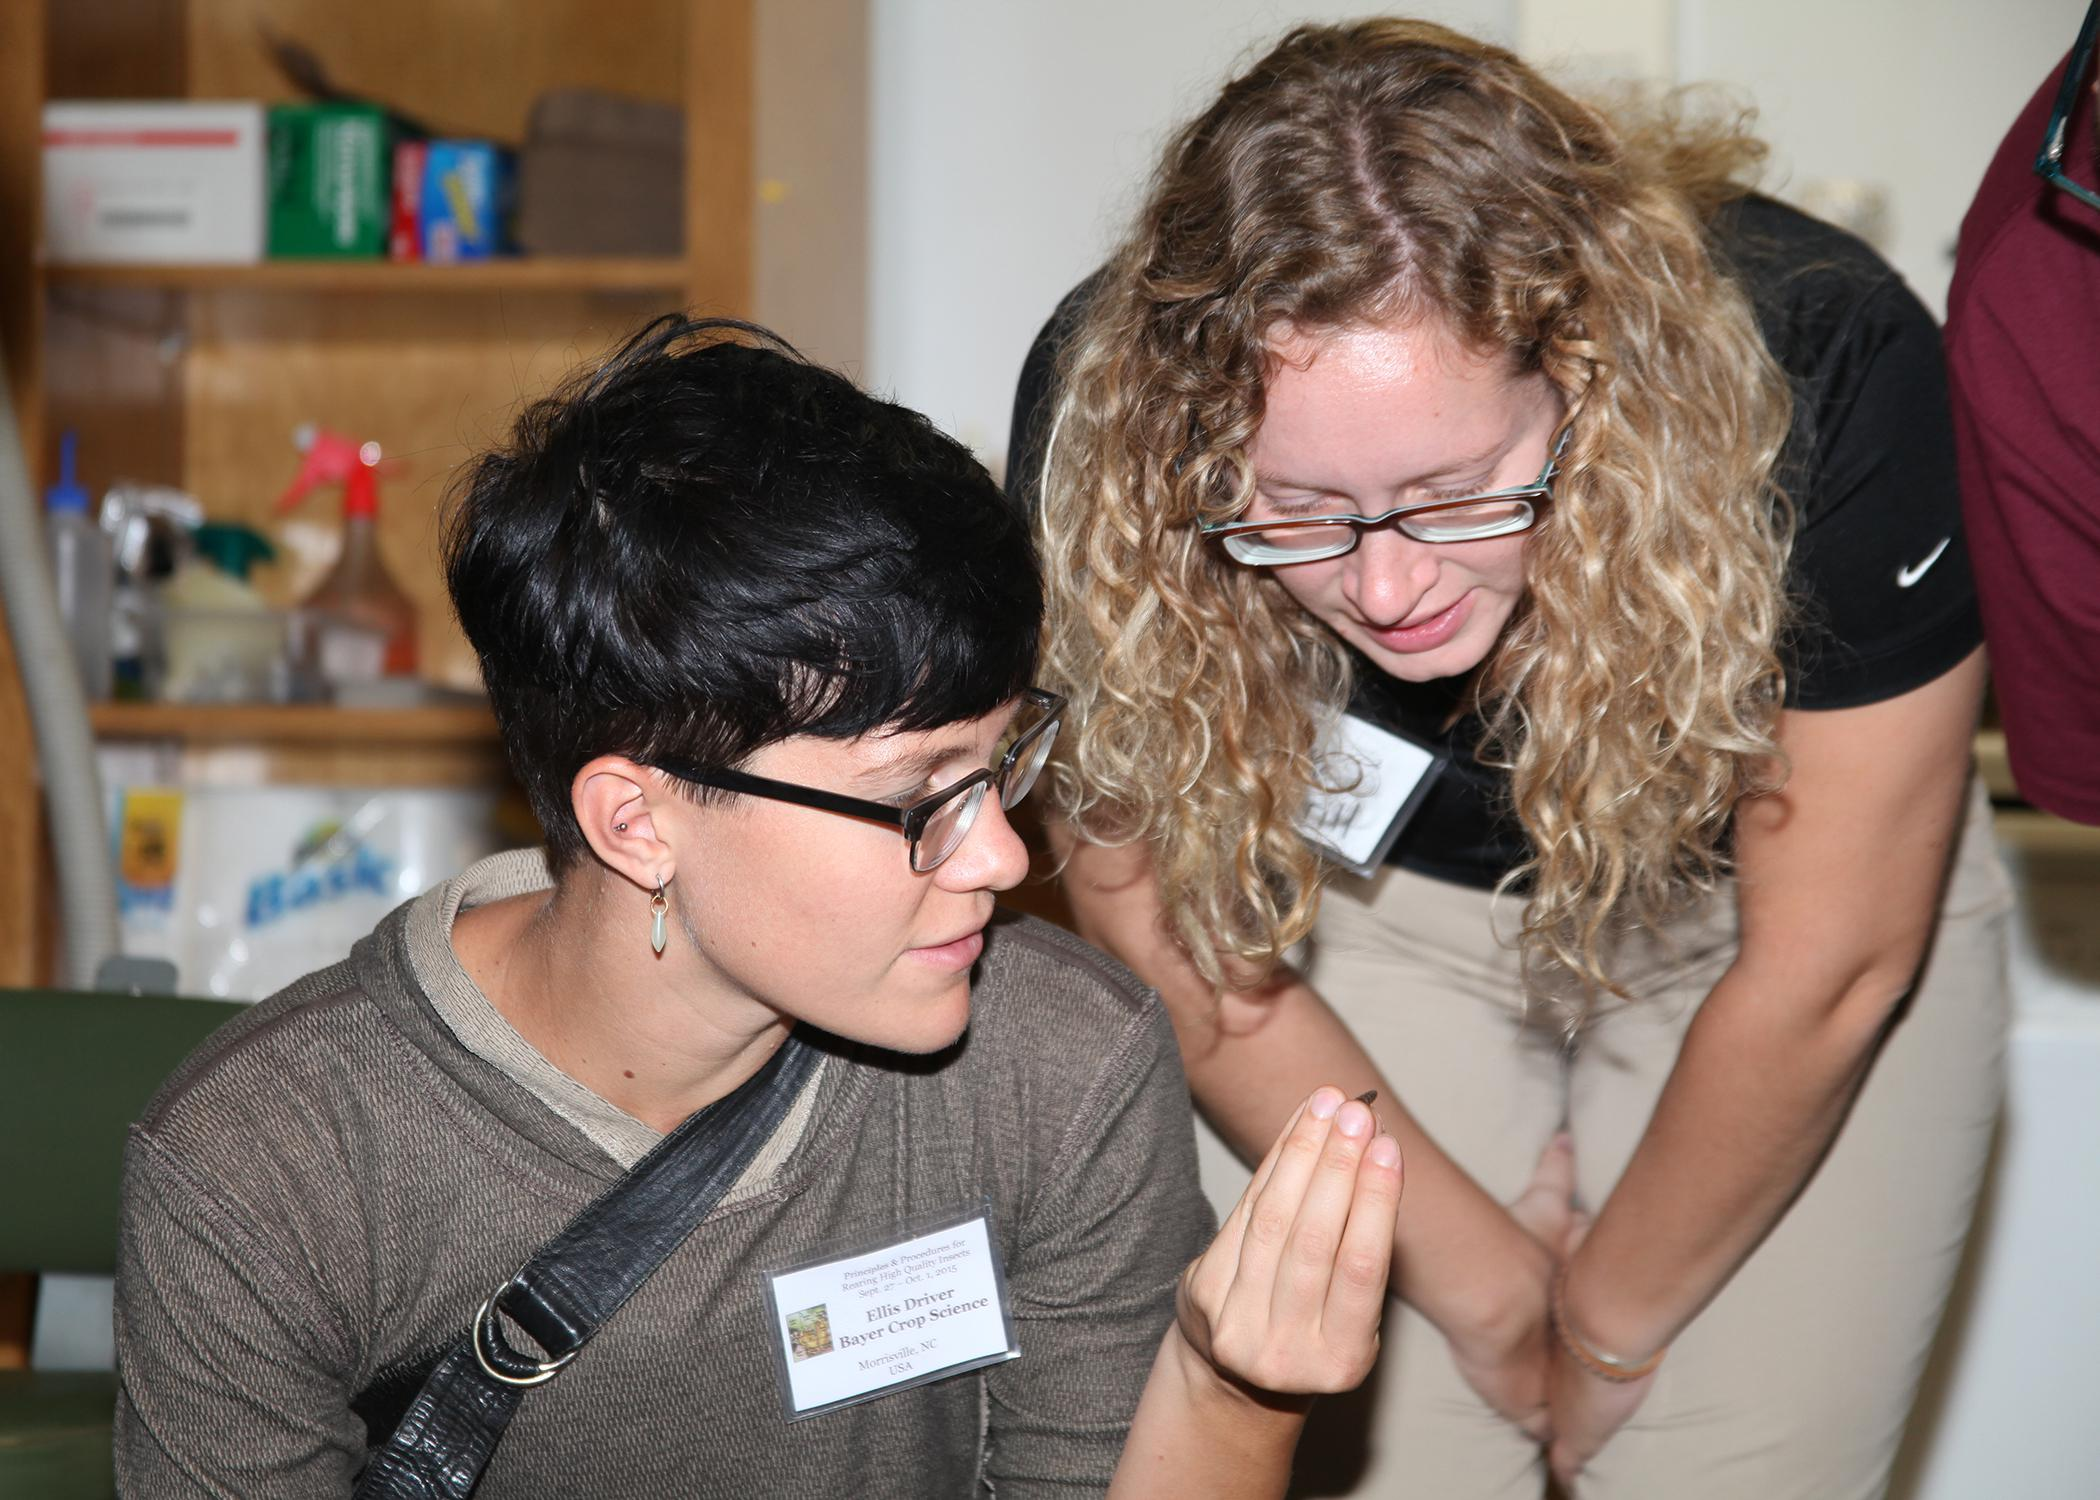 Each fall, scientists from all over the world come to Mississippi State University to learn the latest insect-rearing techniques. Ellis Driver from Bayer Crop Science in Morrisville, North Carolina and Brook Merrill of Koppert Biocontrol in Howell, Michigan examine a black soldier fly larva in an MSU lab on Sept. 30, 2015 at the 18th annual International Insect Rearing Workshop. (Photo by MSU Ag Communications/Kat Lawrence)